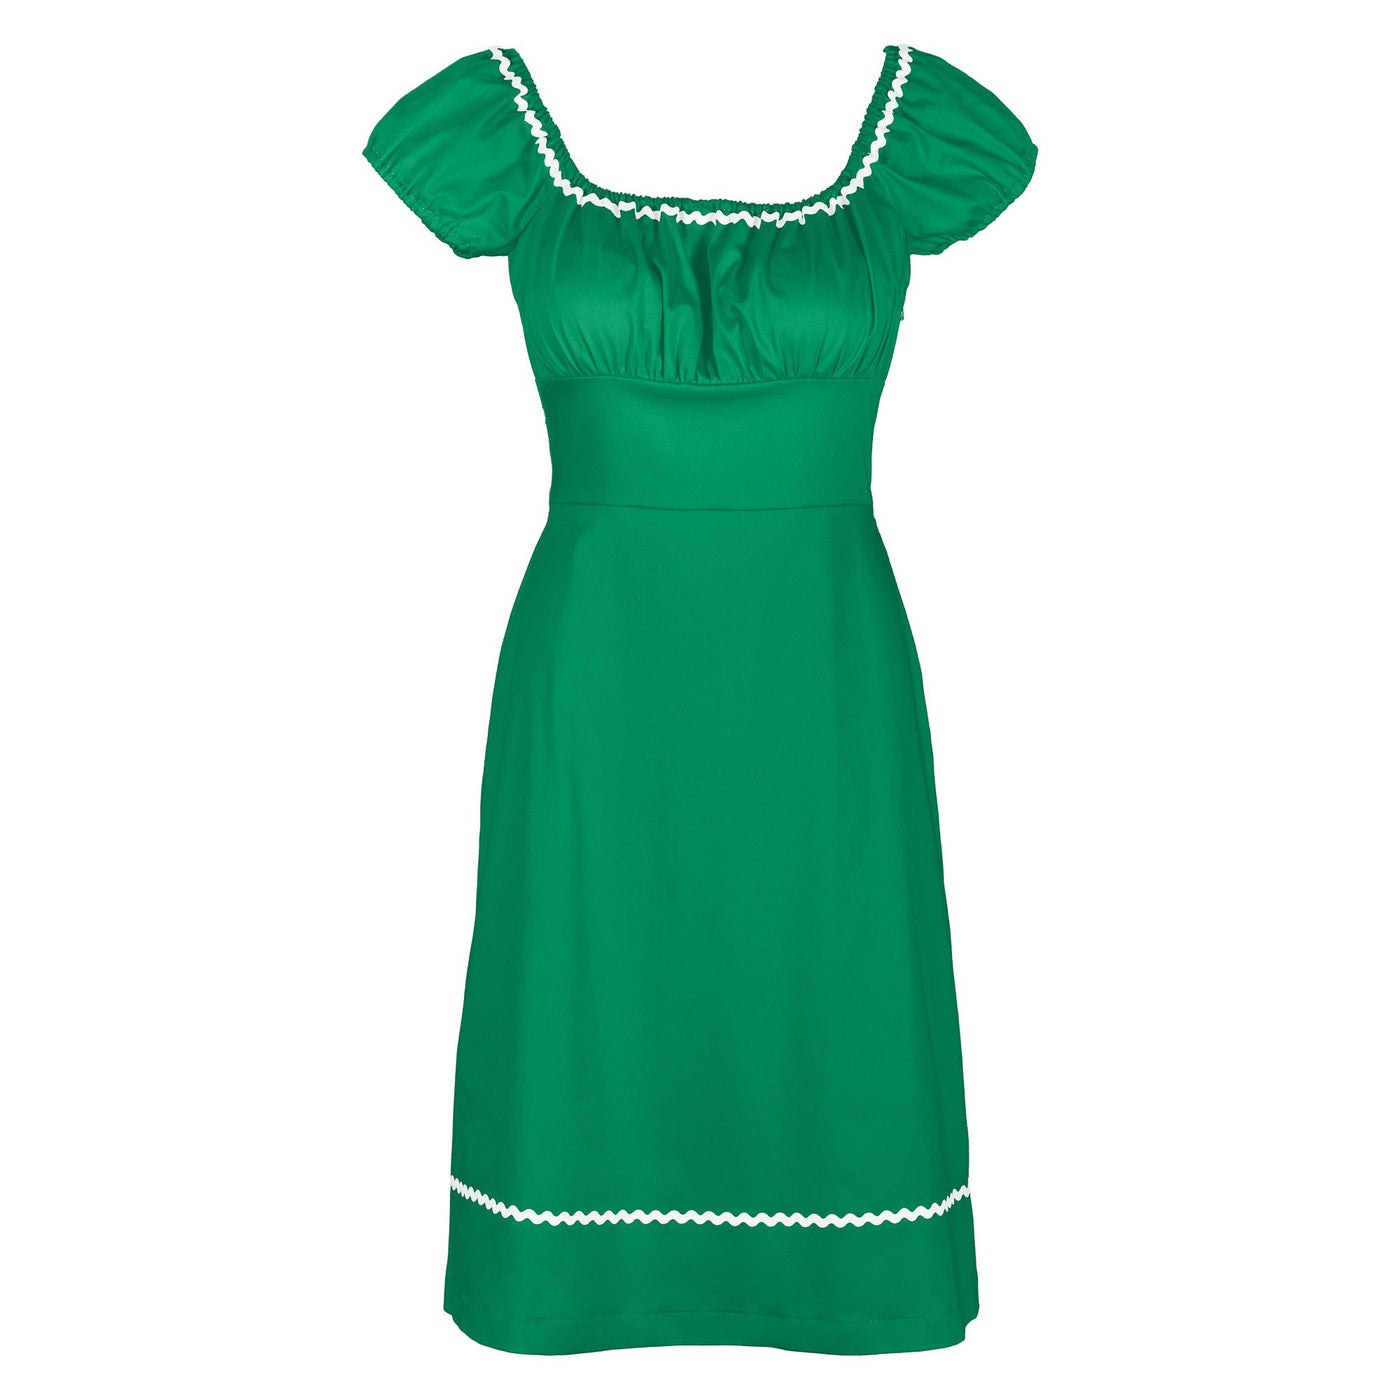 Dollydagger Polly Green Ric Rac Dress